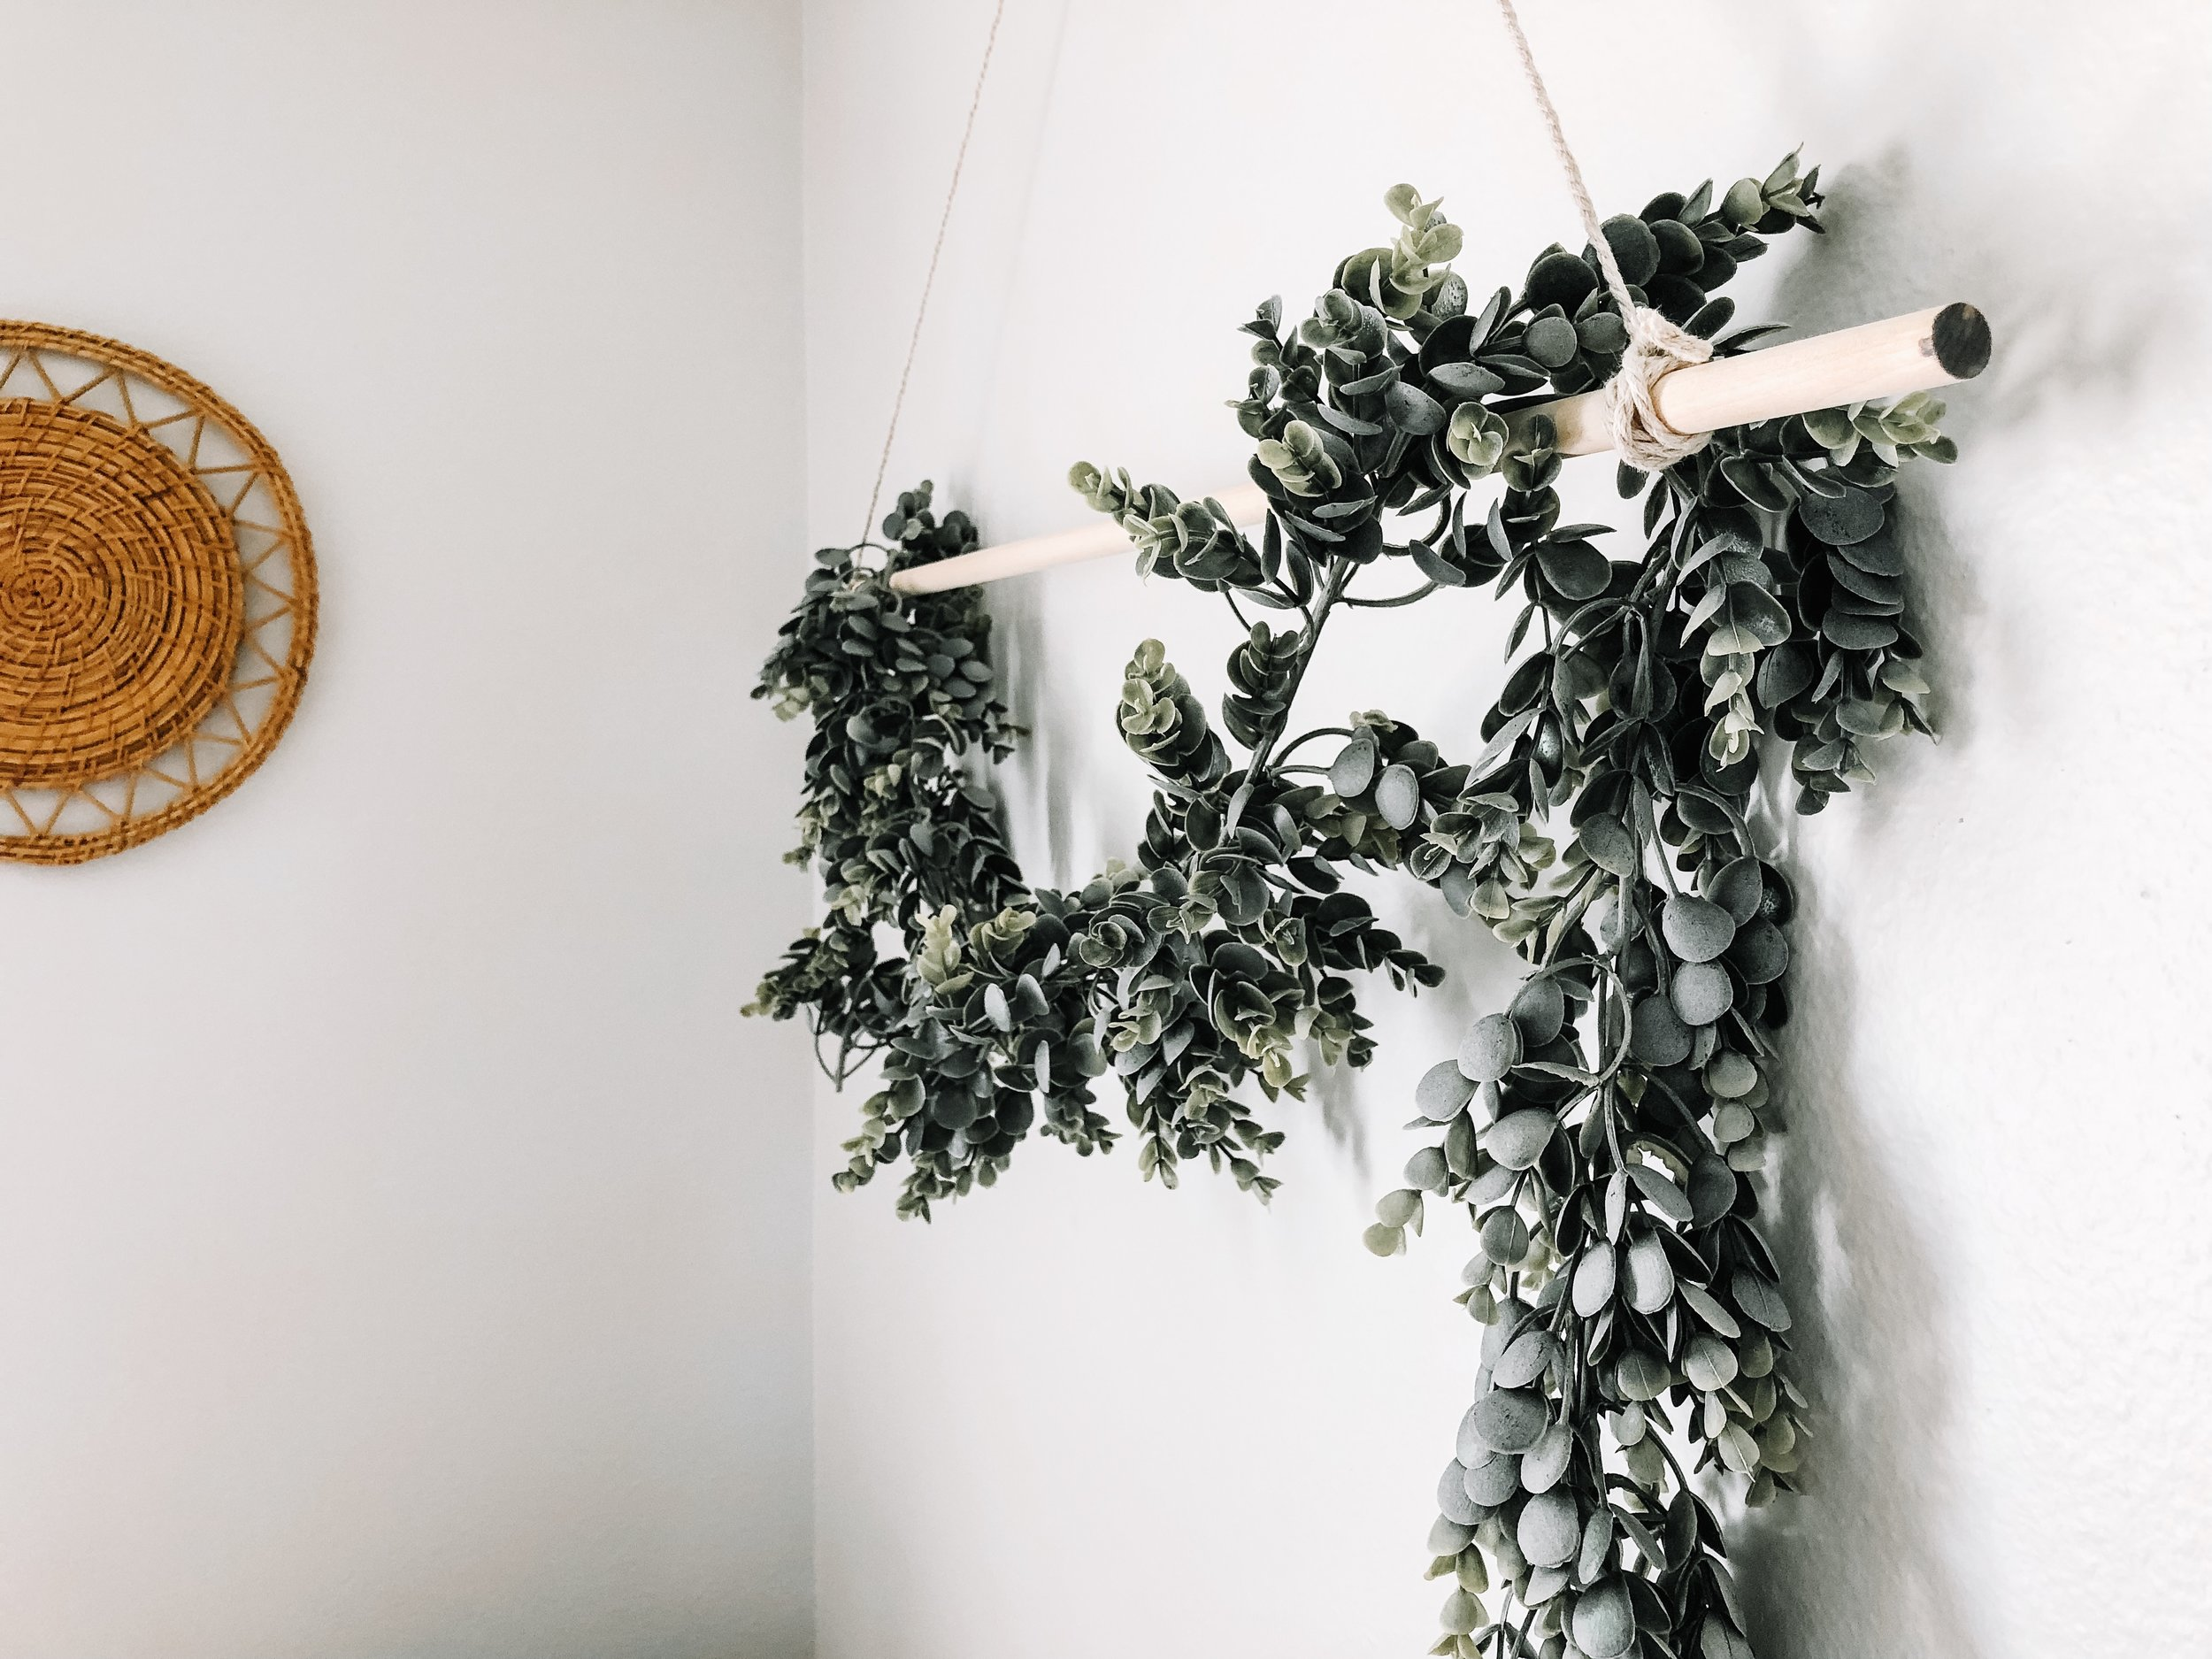 DIY-eucalytpus-garland-hanging-bedroom.jpg